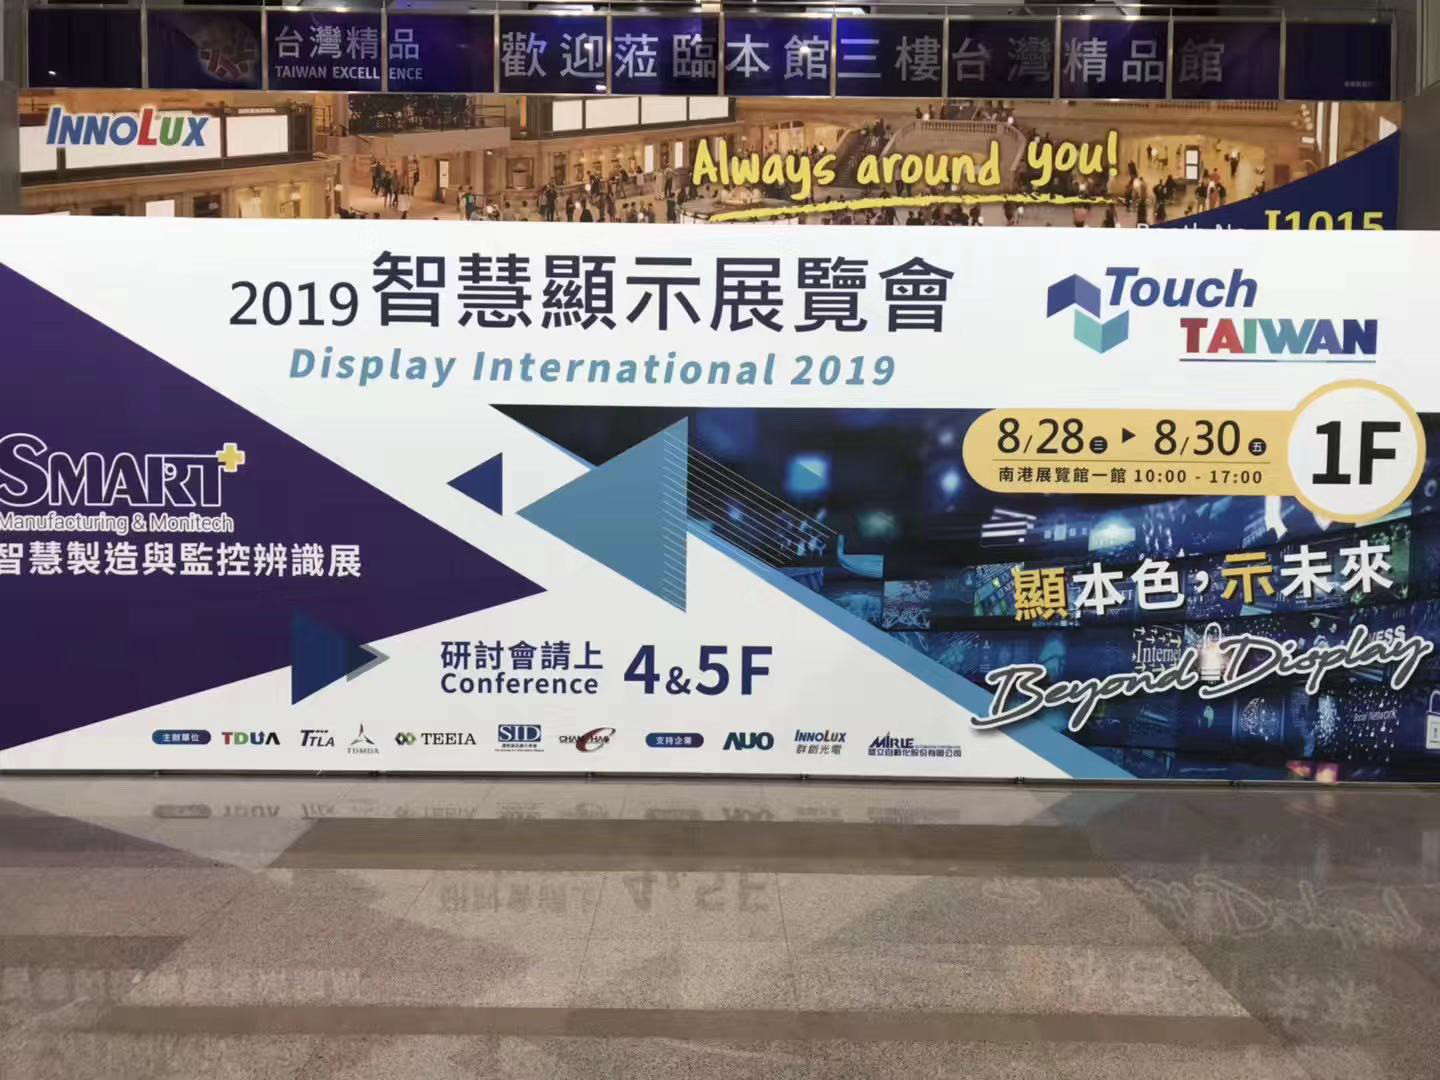 china latest news about An-Touch attended Taiwan Display international 2019